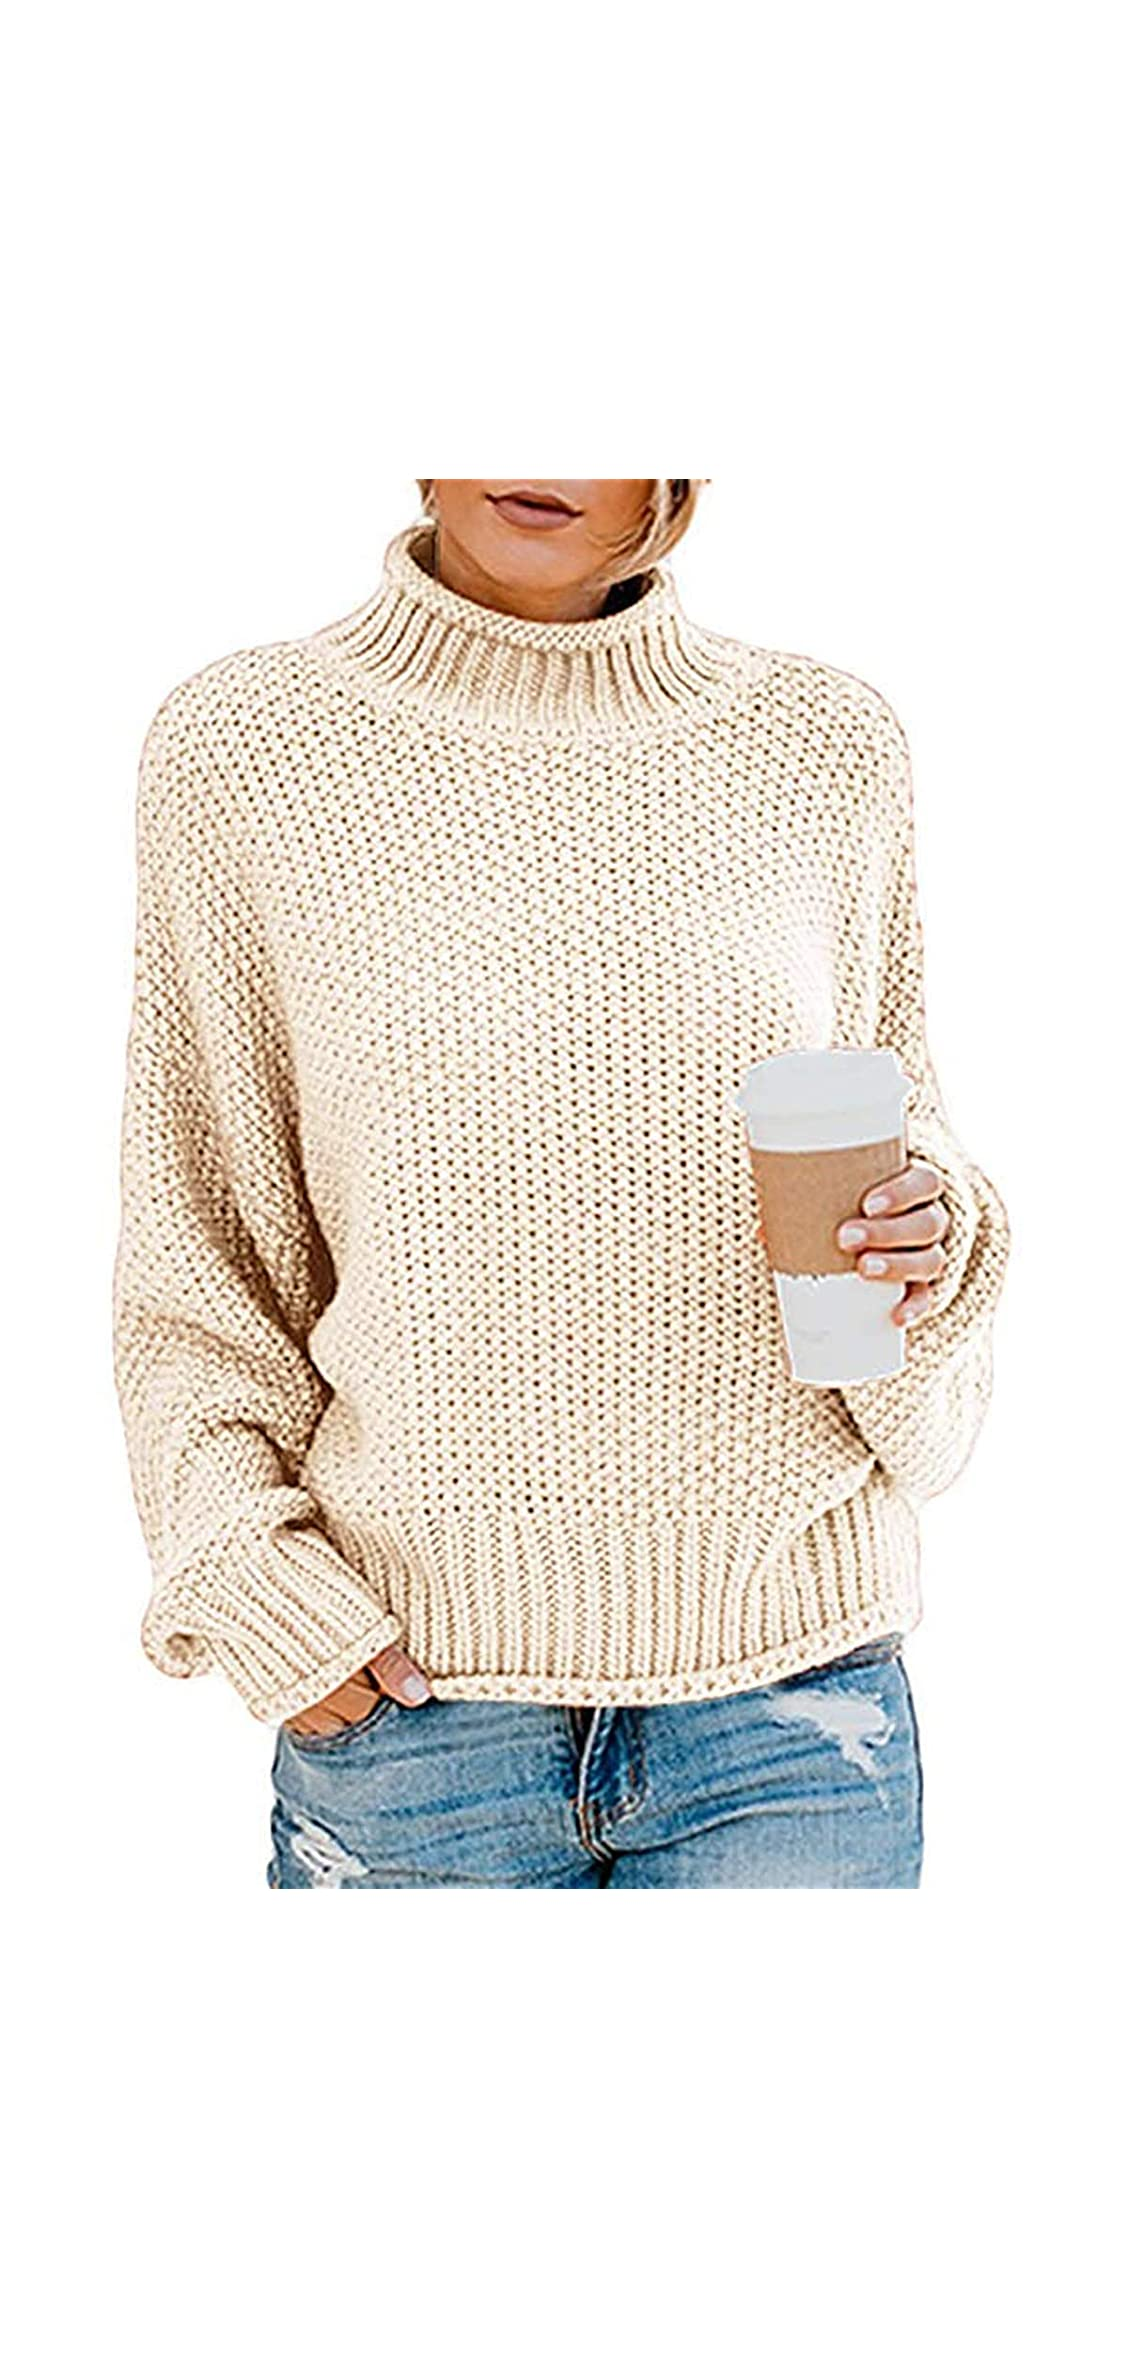 Womens Chunky Turtleneck Sweaters Batwing Sleeve Knitted